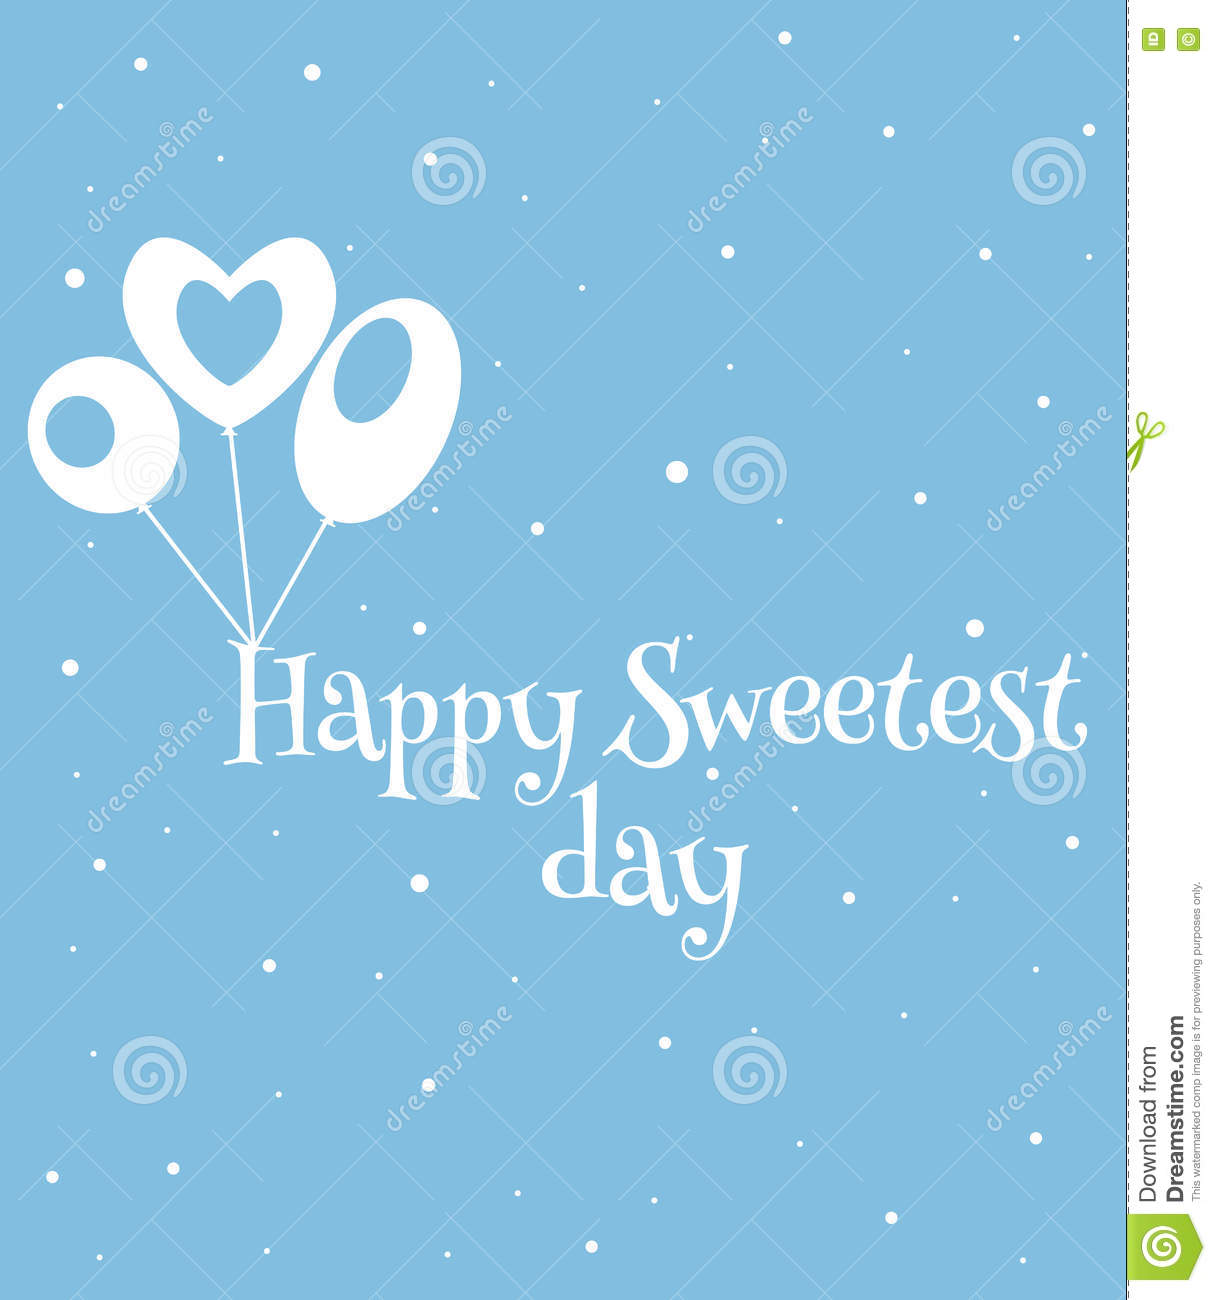 Happy Sweetest Day Card Stock Vector Illustration Of Flyer 78610726